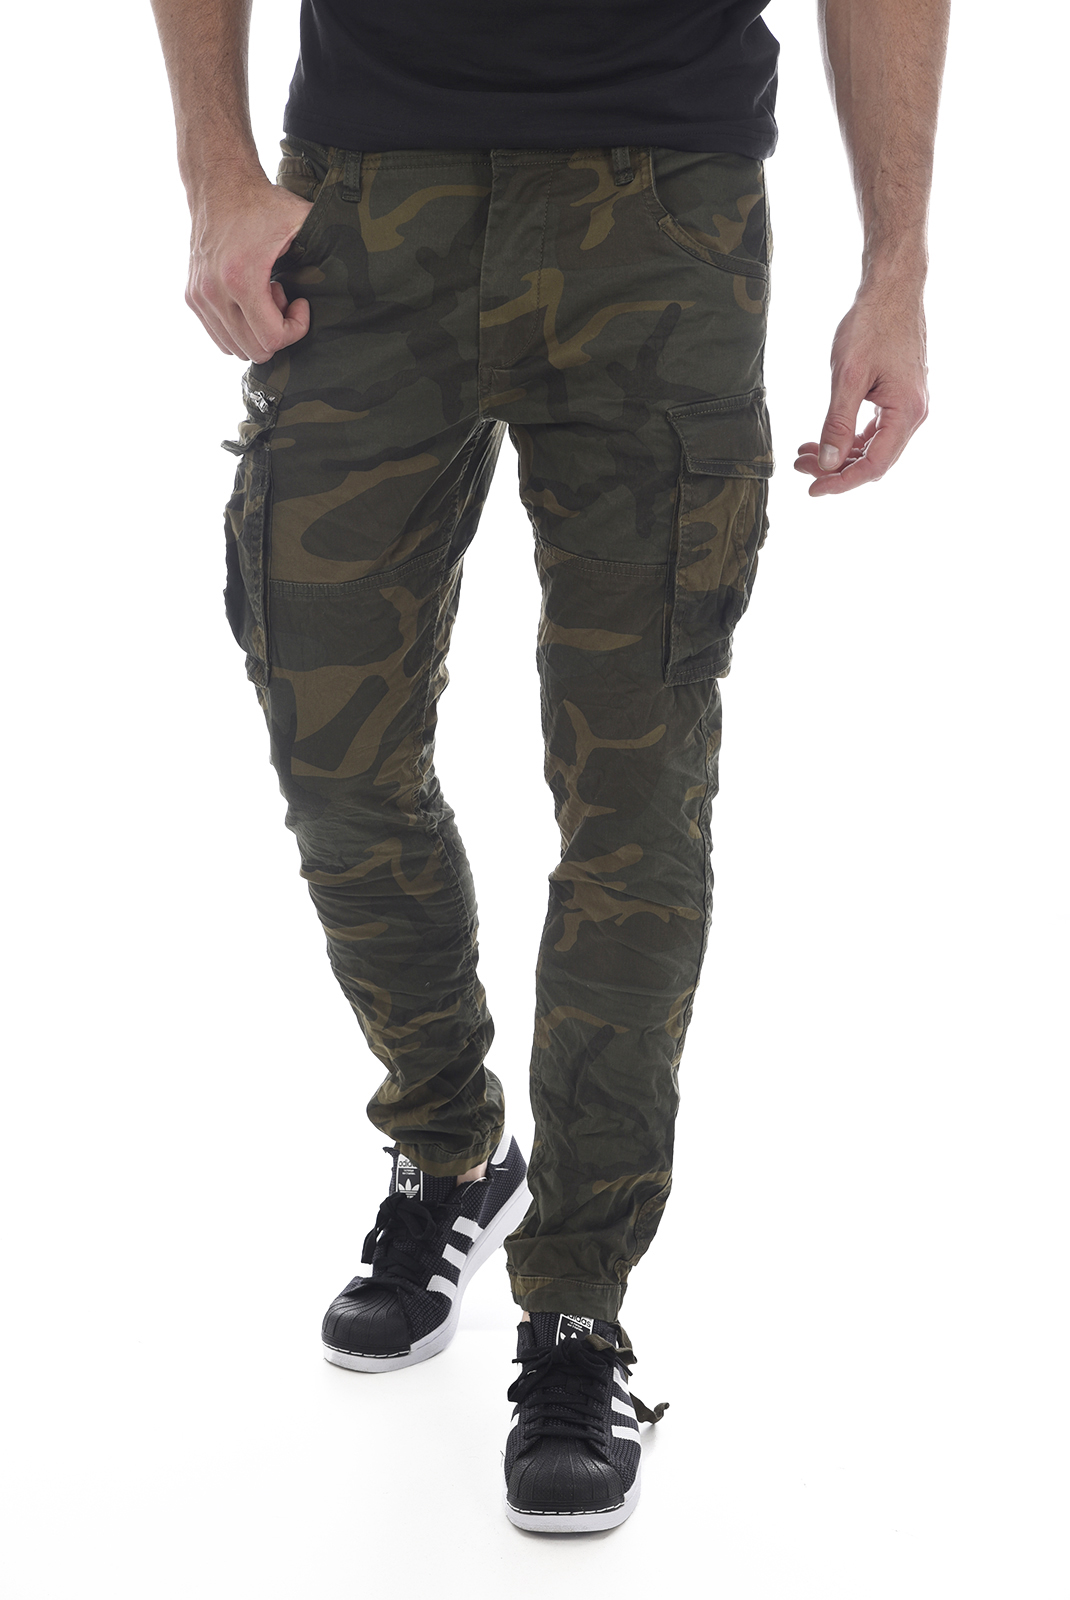 JACK AND JONES PANTALON CARGO PAUL CHOP WW NOOS FOREST NIGHT/CAMO